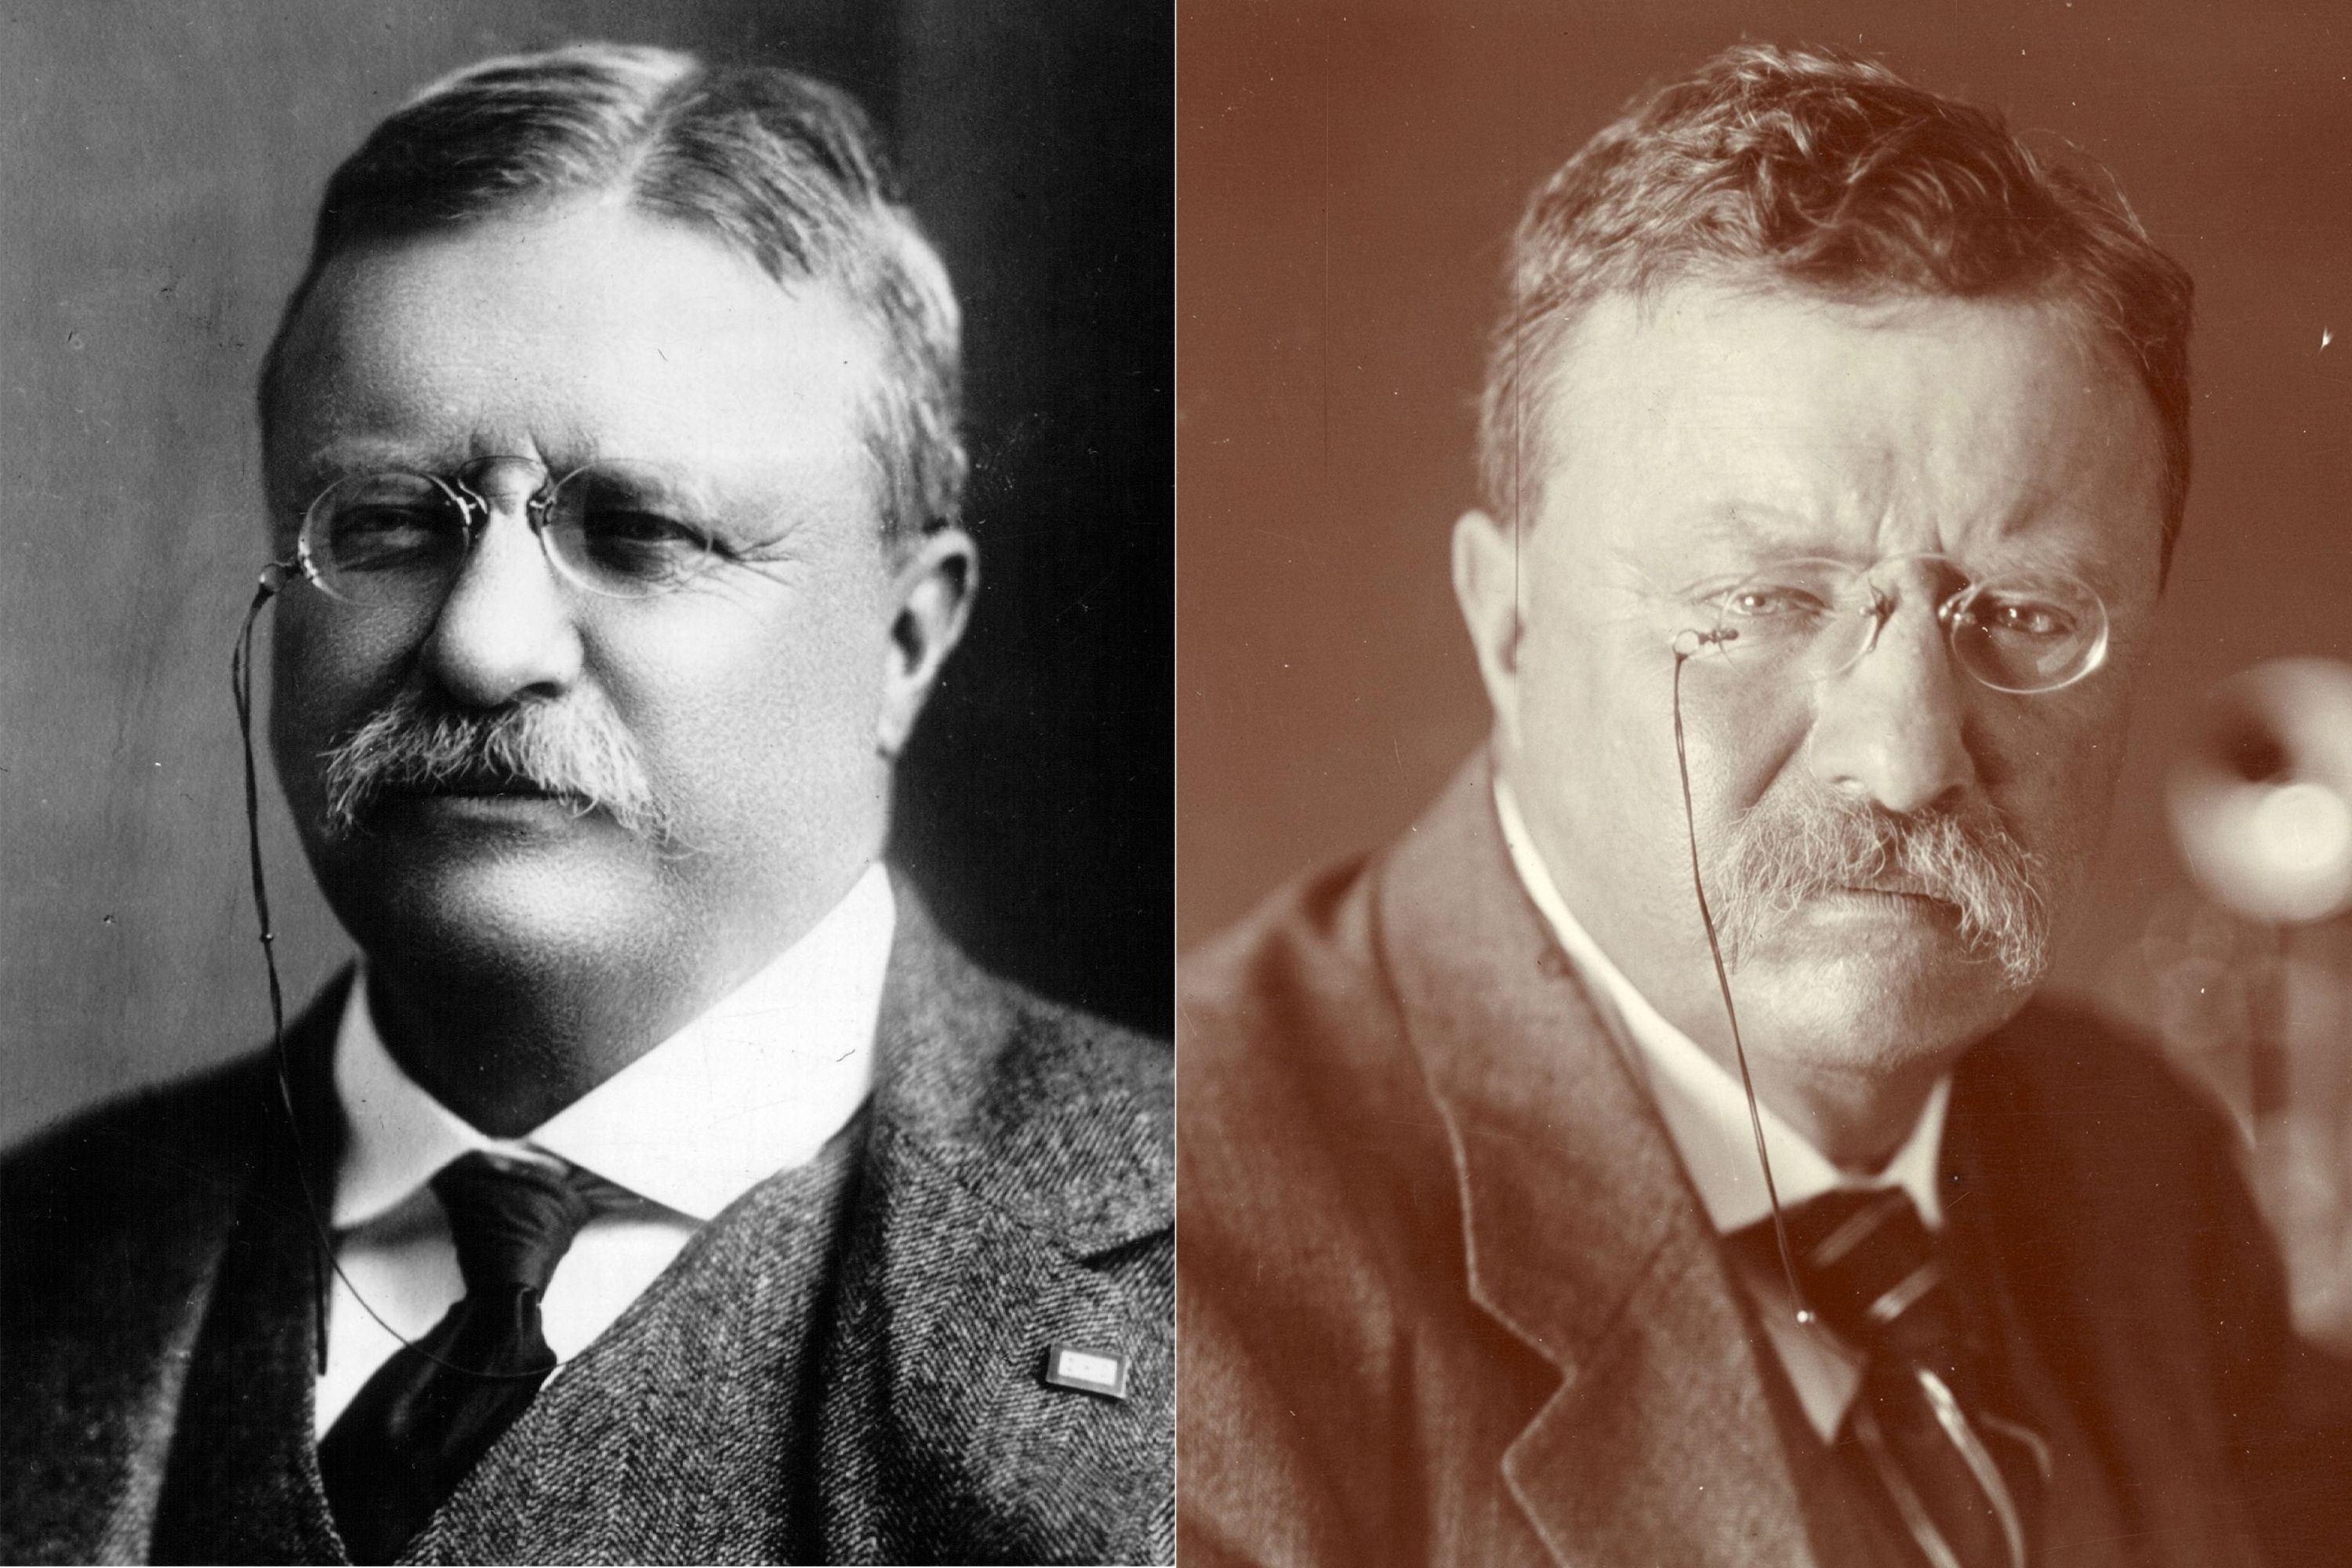 Theodore Roosevelt - Presidents Before And After Serving In Office